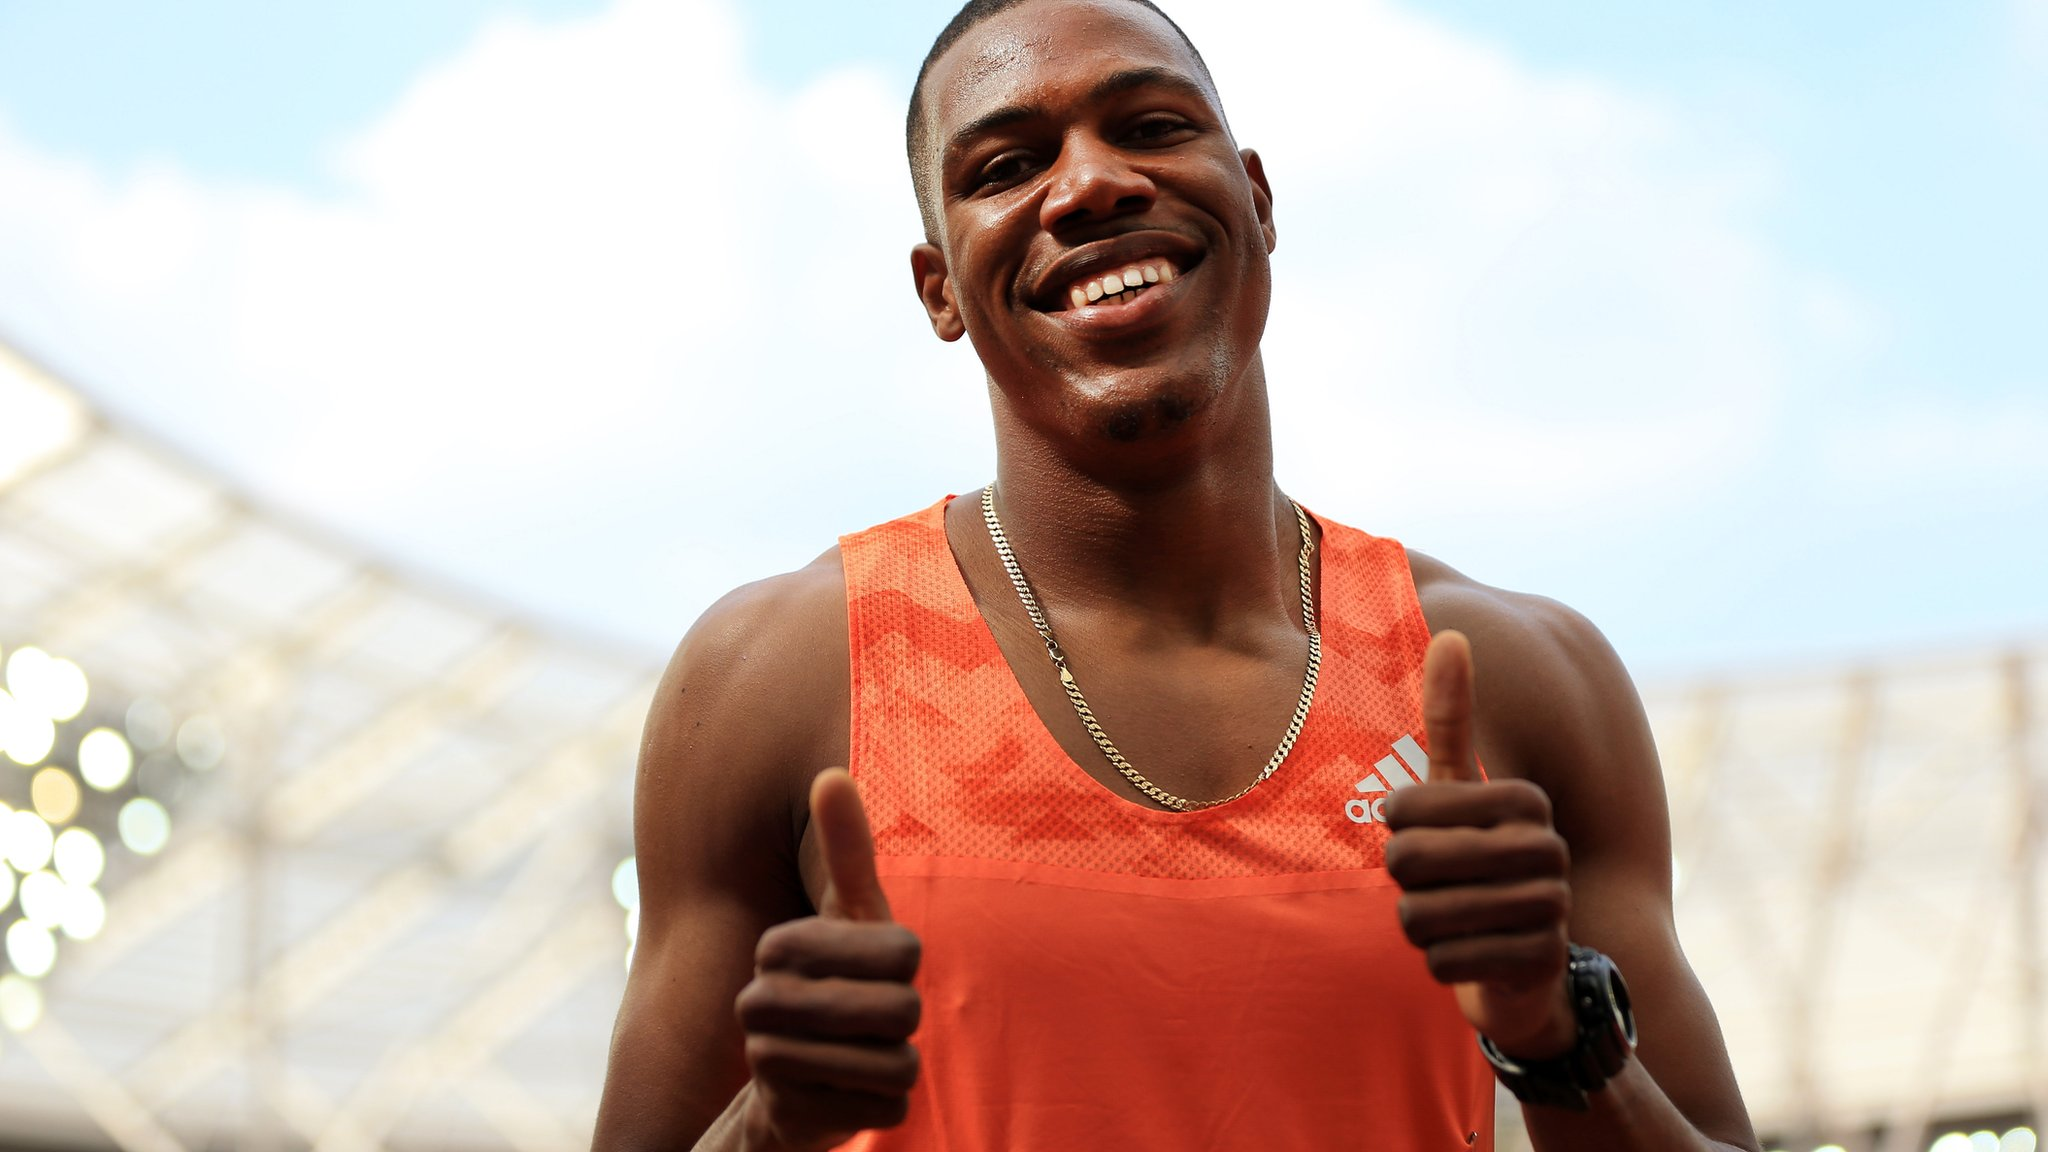 Anniversary Games 2018: Zharnel Hughes edged out at London Stadium